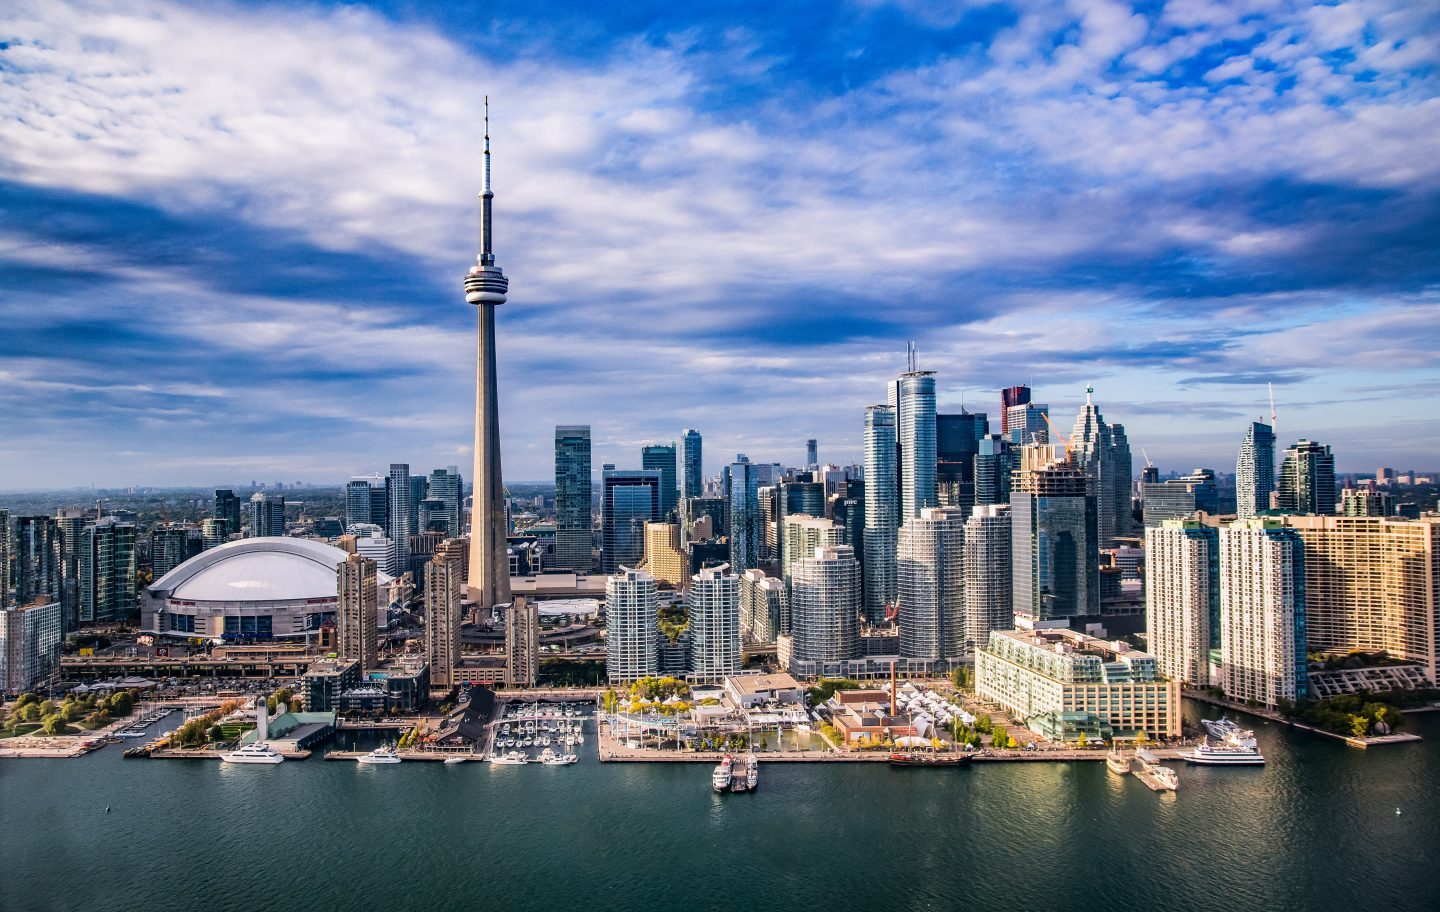 CN Tower - Tallest Building in the World - Beautiful Global